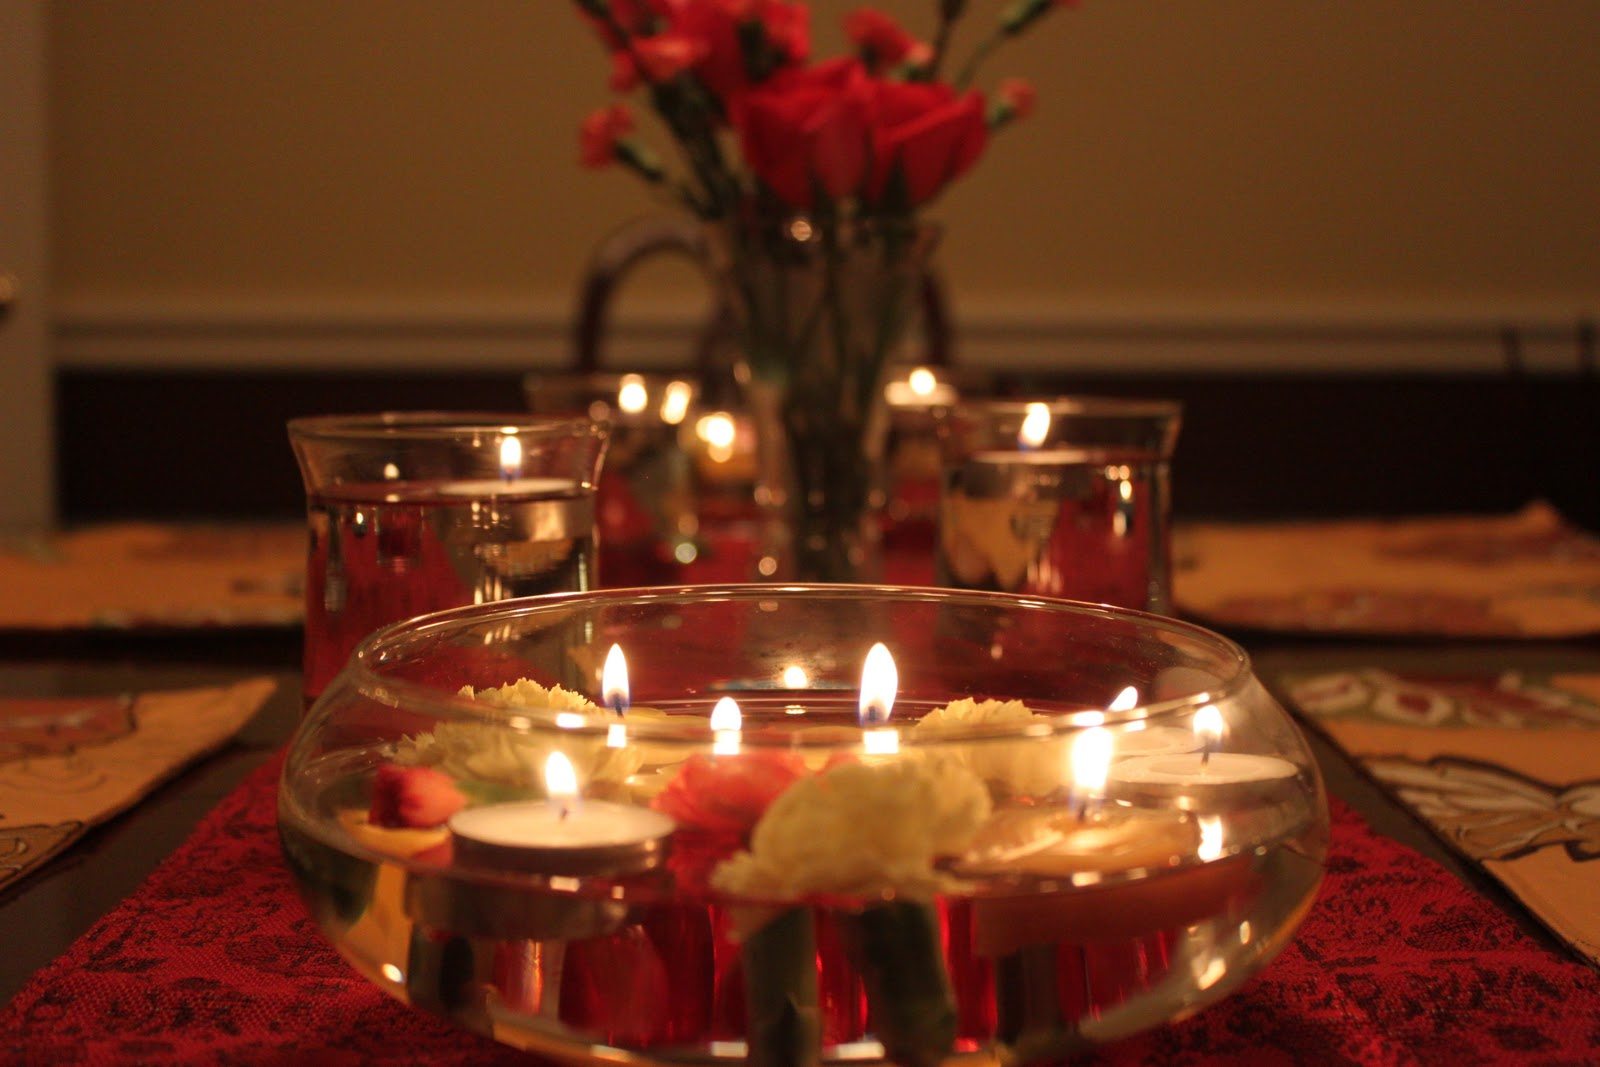 centerpiece of candles inside water with roses